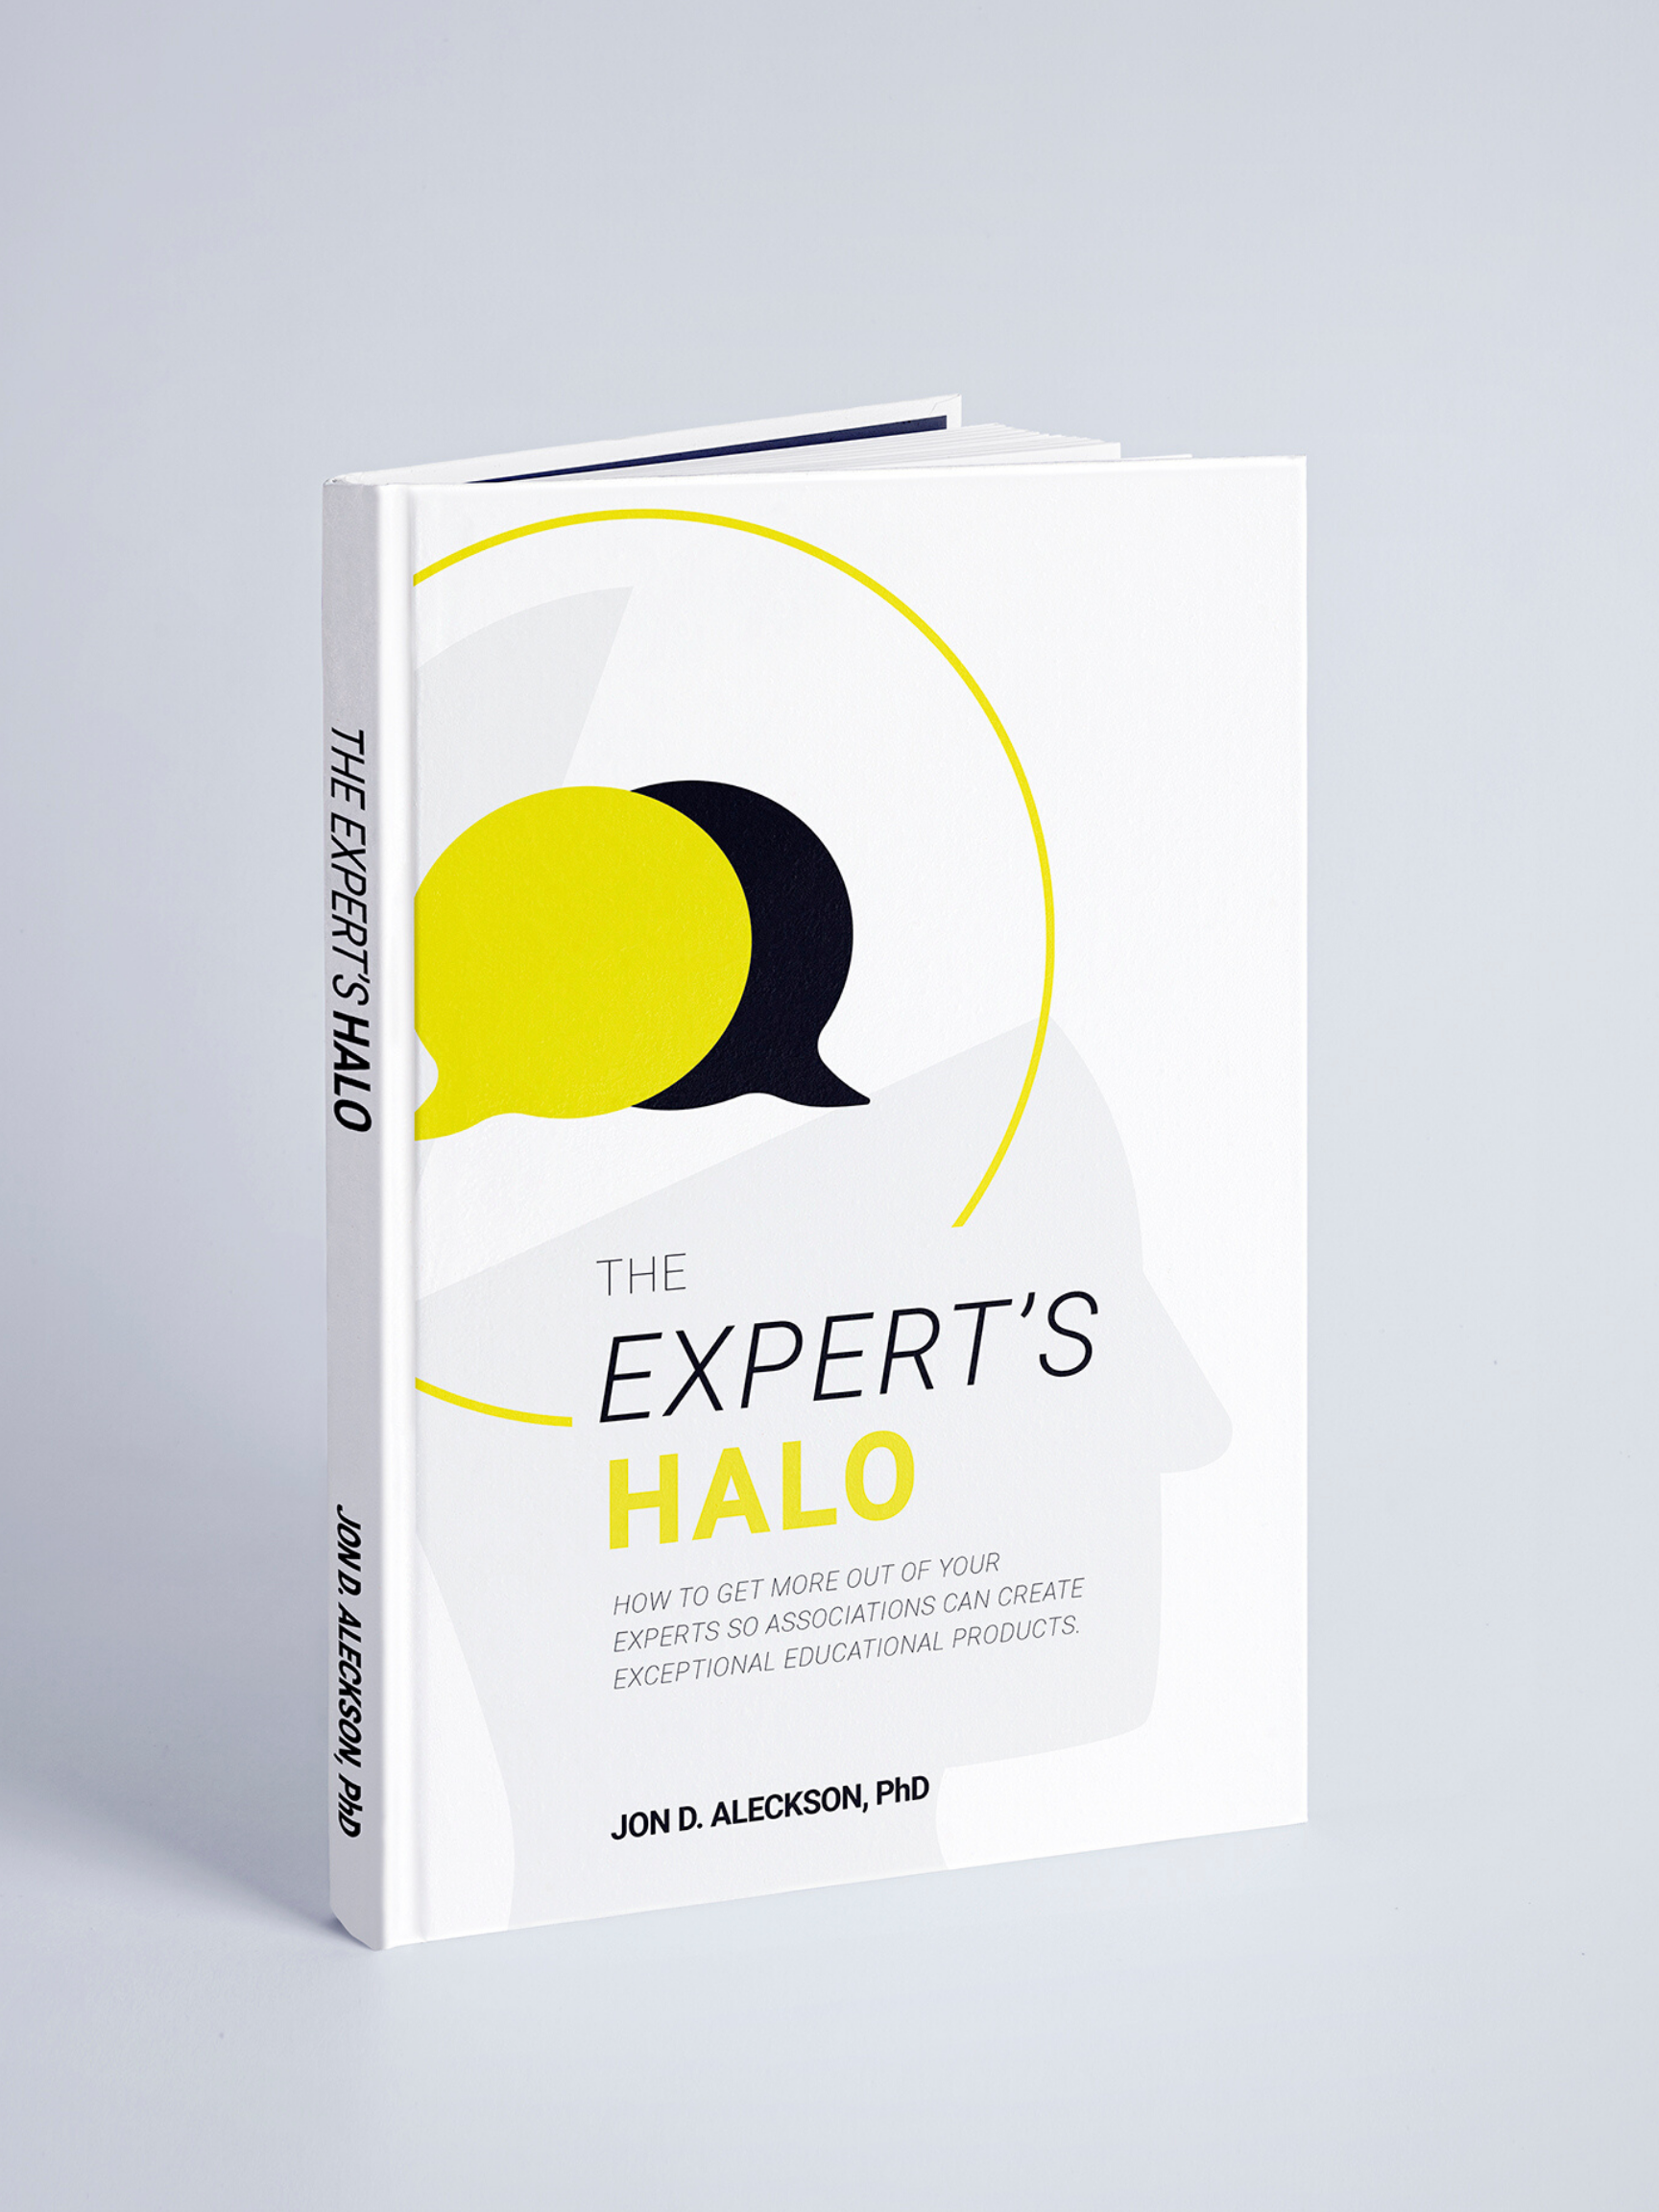 The Expert's Halo Book